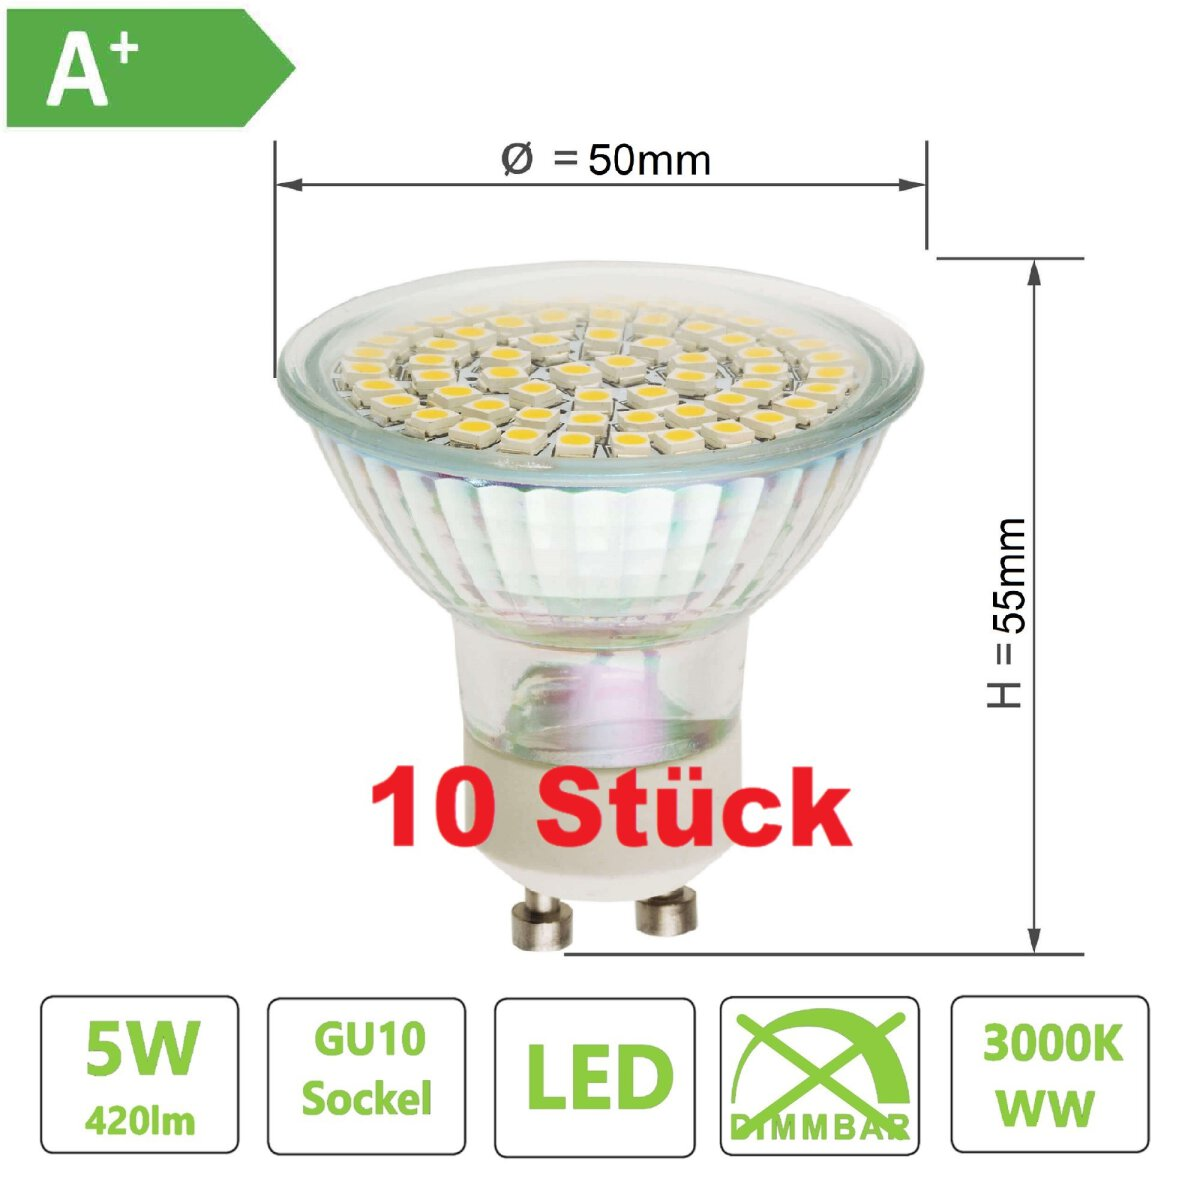 10x led gu10 lampe 60xsmd chip lichtfarbe warmwei 3000k. Black Bedroom Furniture Sets. Home Design Ideas